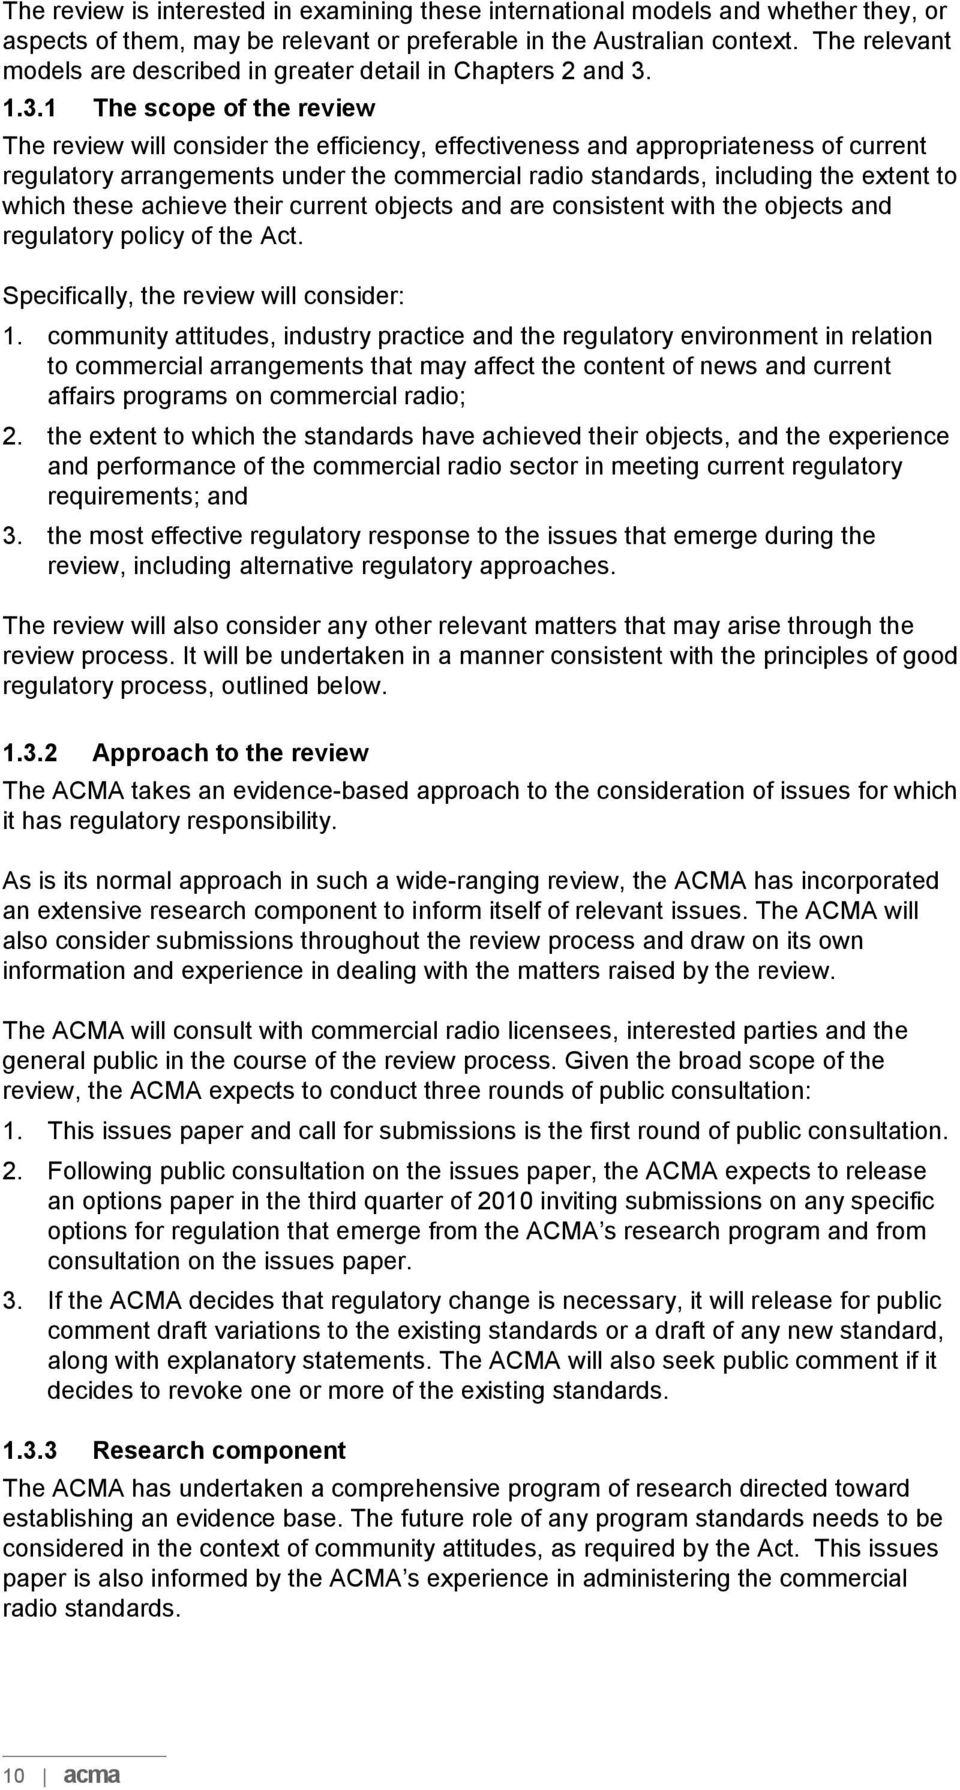 1.3.1 The scope of the review The review will consider the efficiency, effectiveness and appropriateness of current regulatory arrangements under the commercial radio standards, including the extent